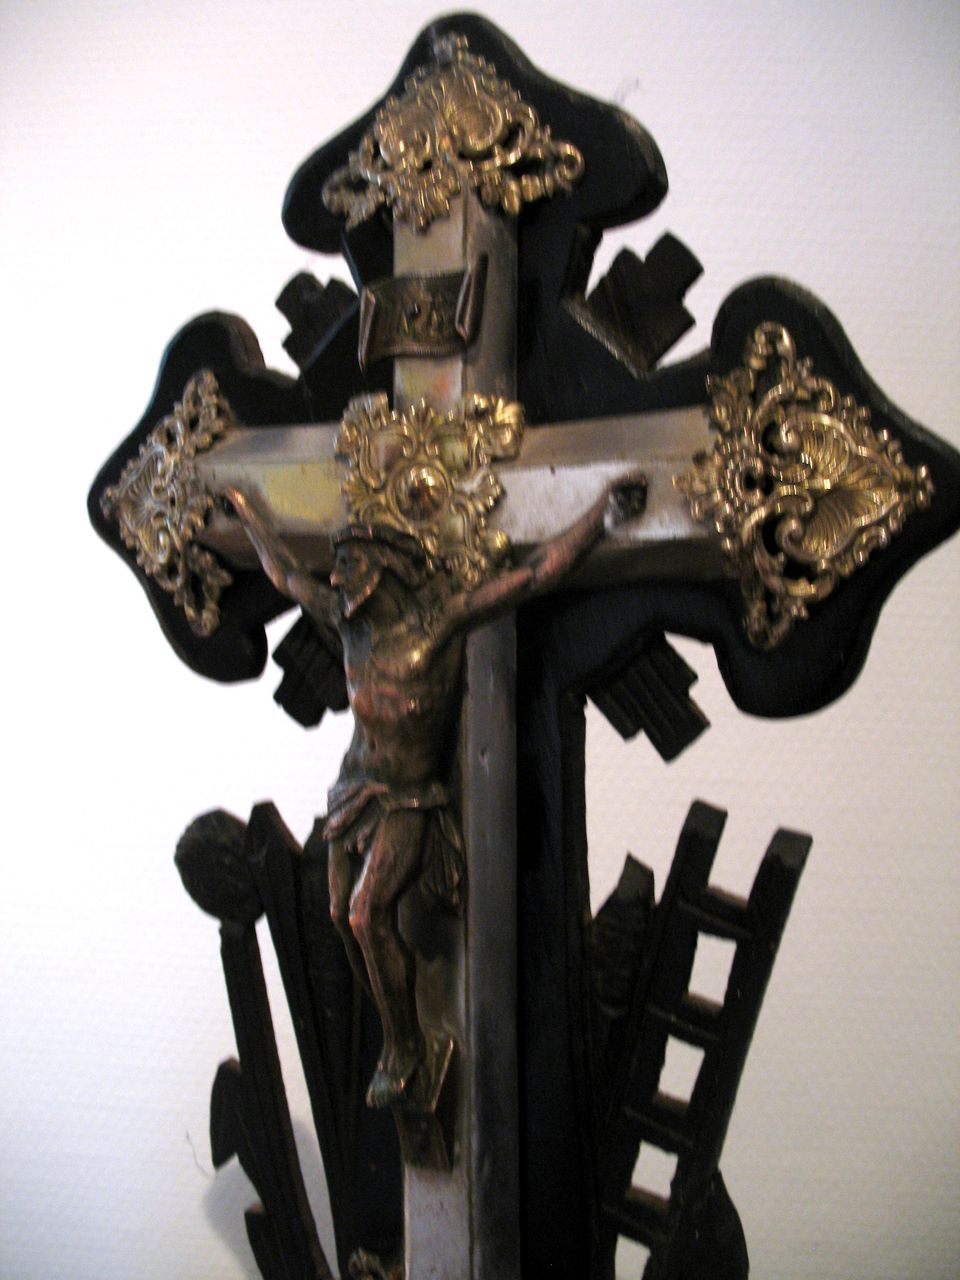 Antique French Crucifix Cross Napoleon III 19th C Century Ornate And BEAUTIFUL!